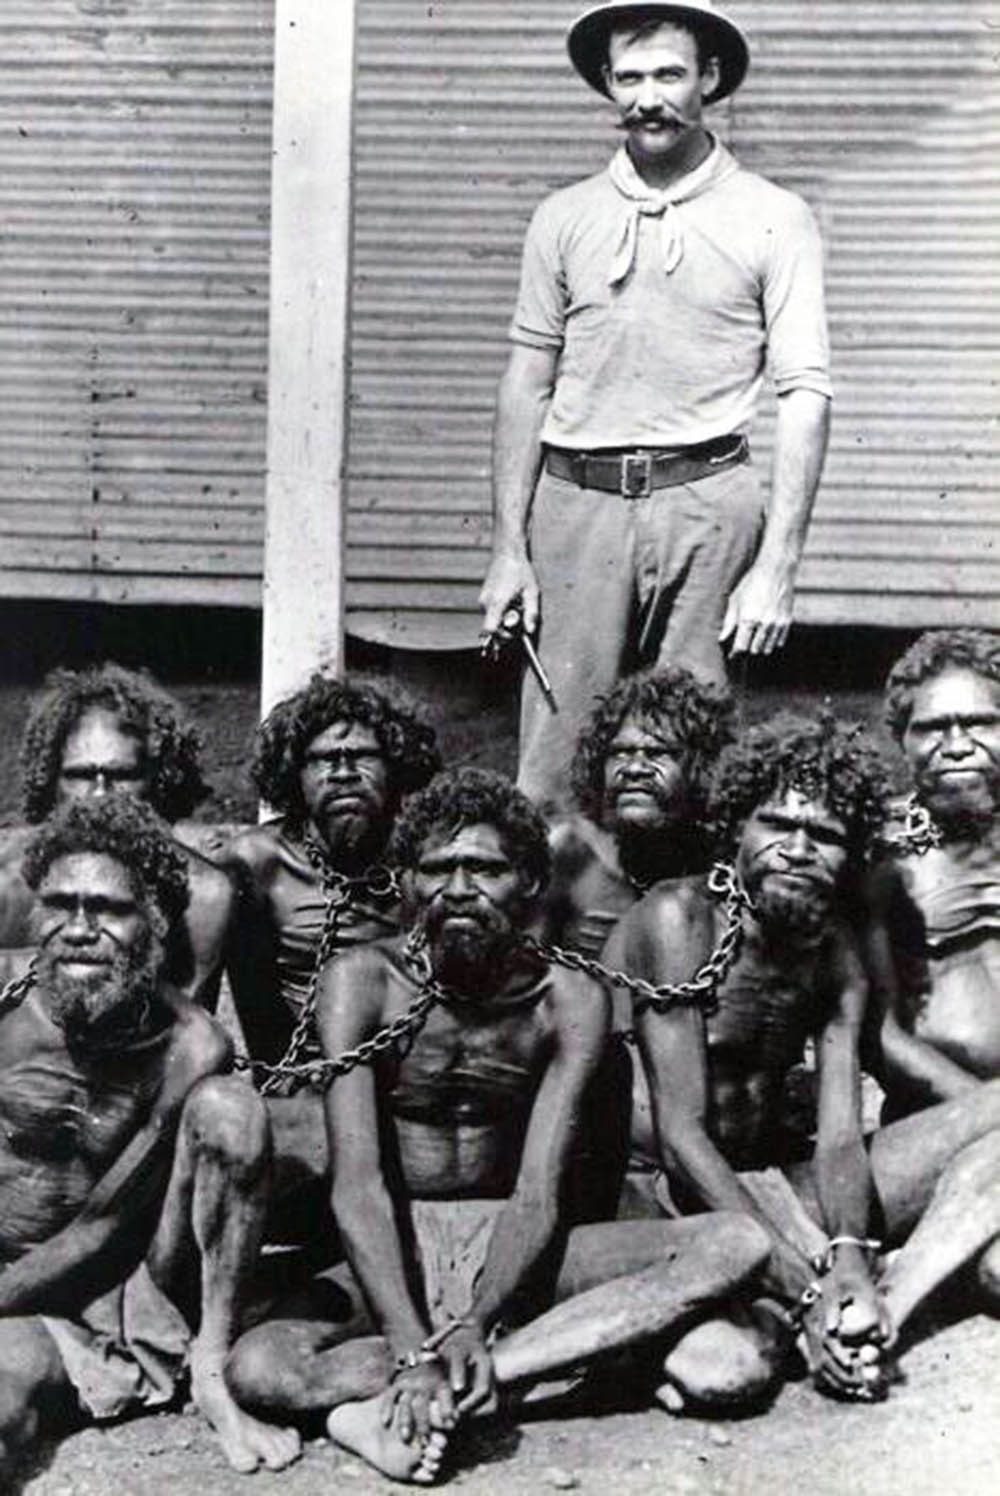 Captive and chained Aboriginals, early 1900s.